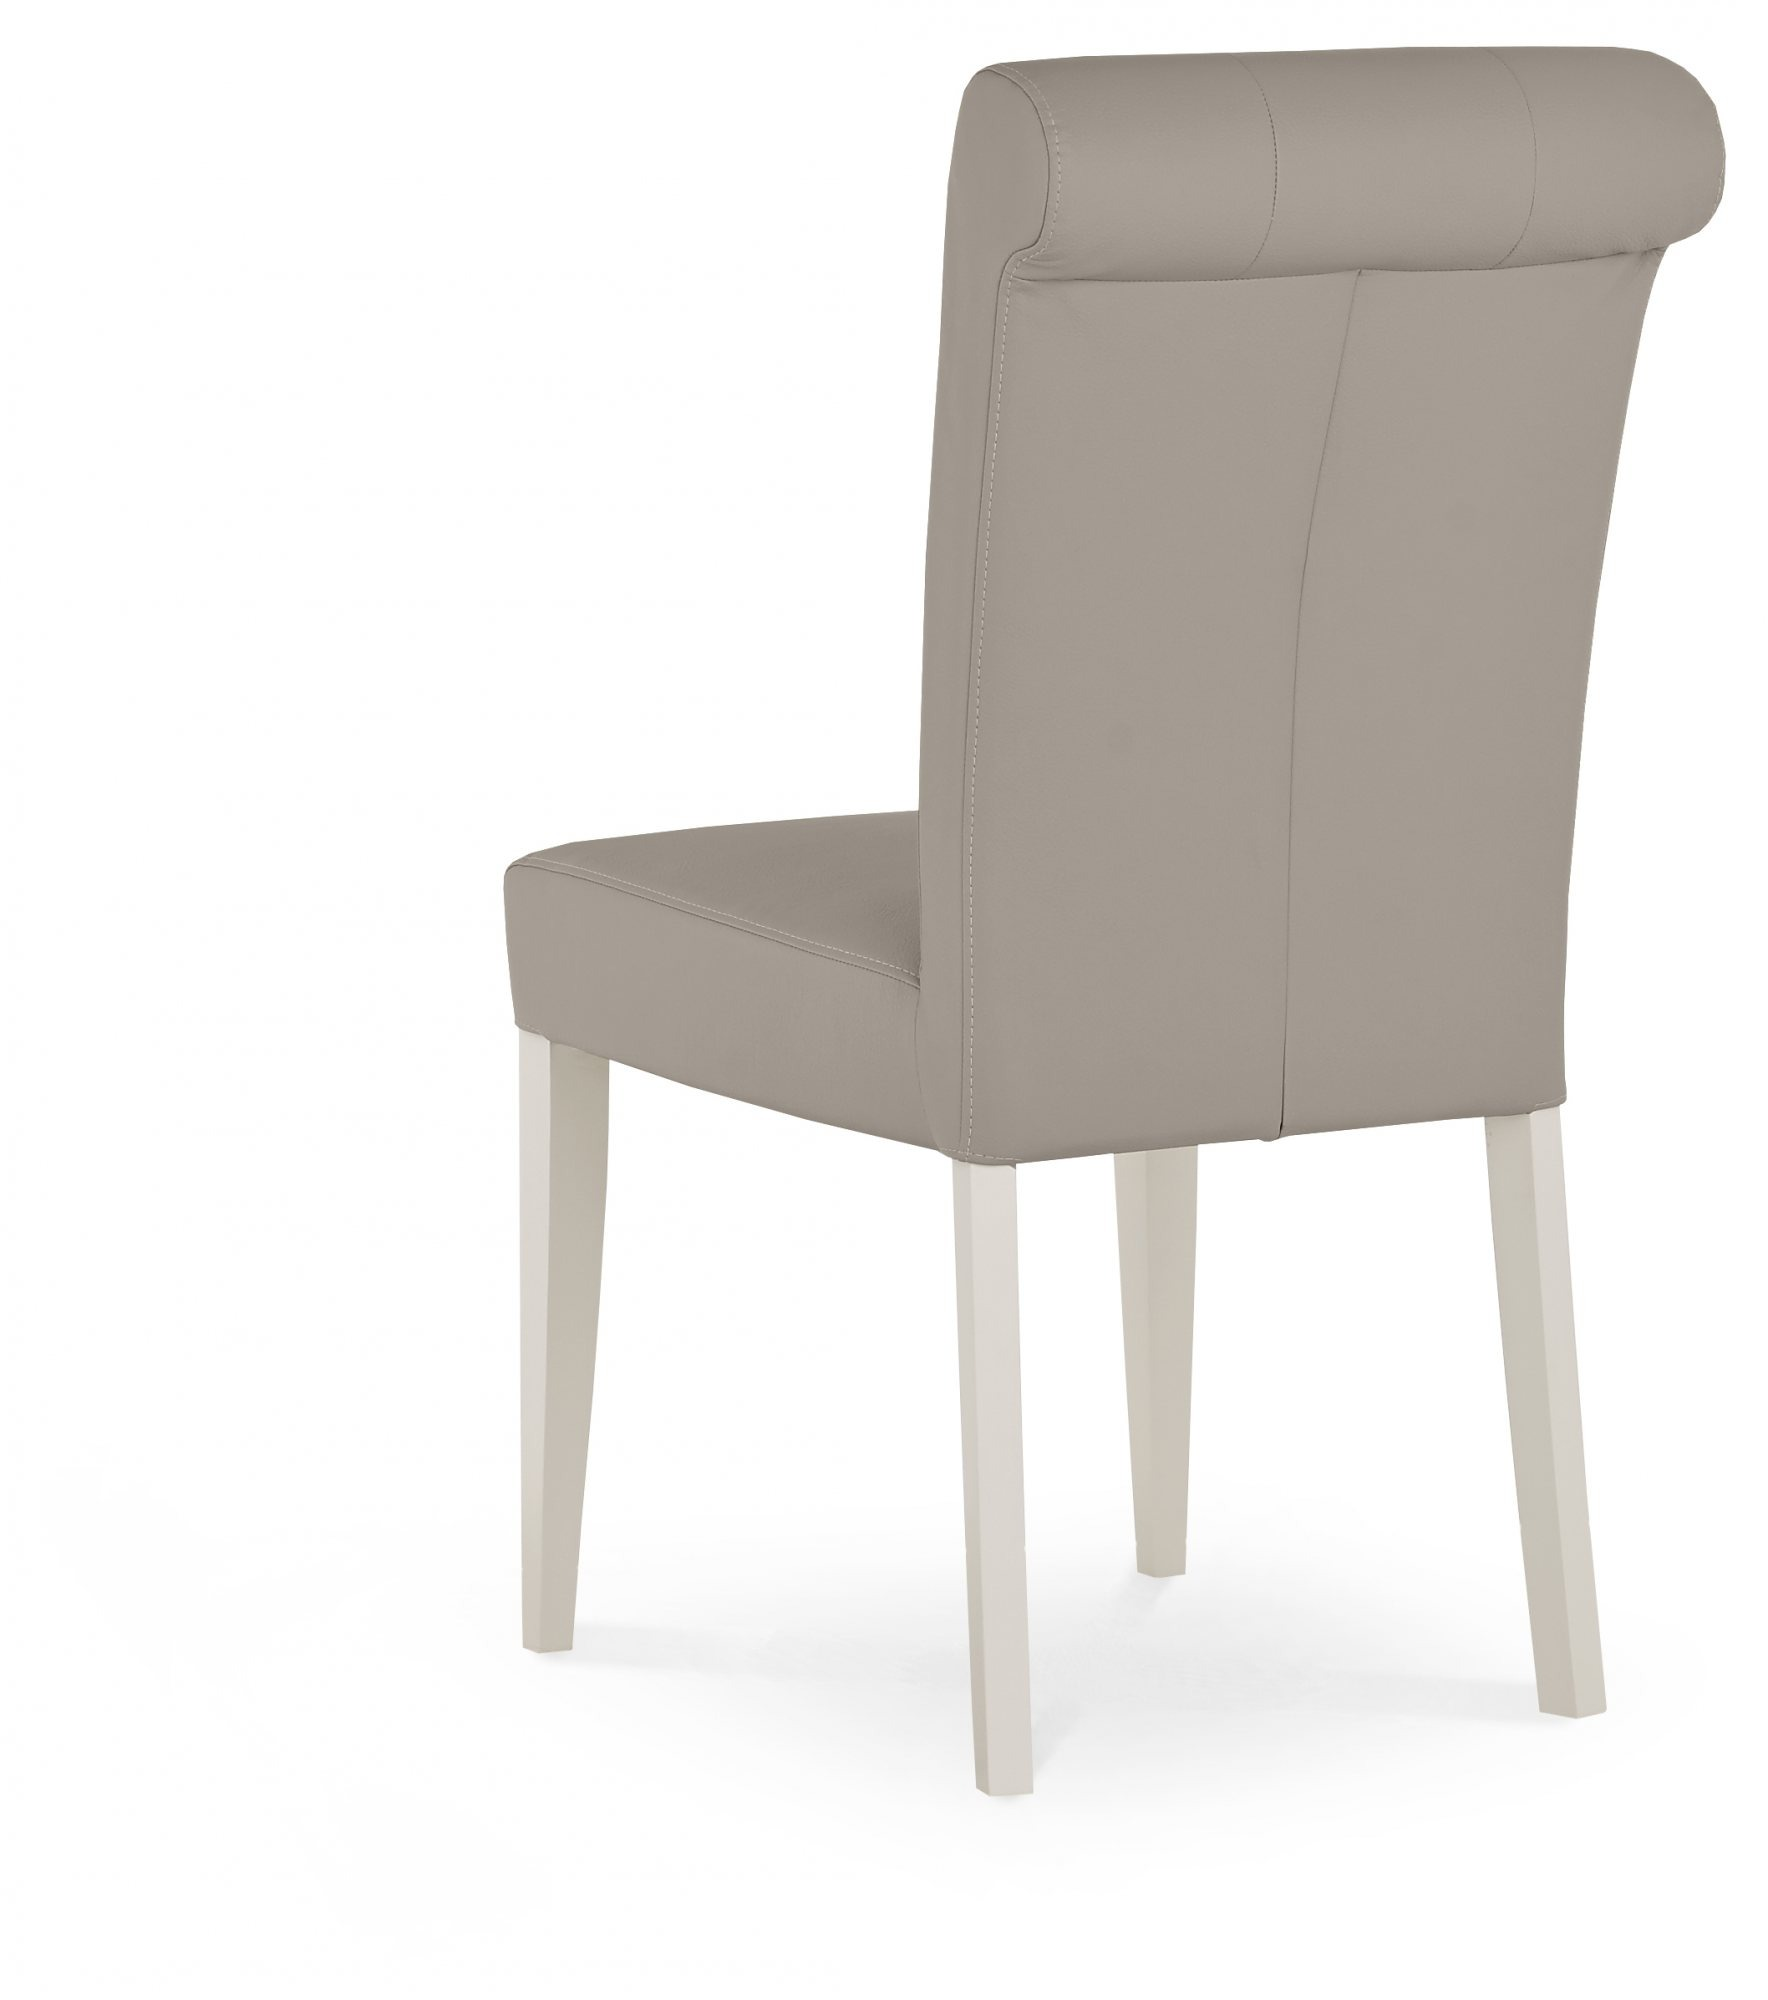 MONICA GREY UPHOLSTERED DINING CHAIR - BACK DETAIL